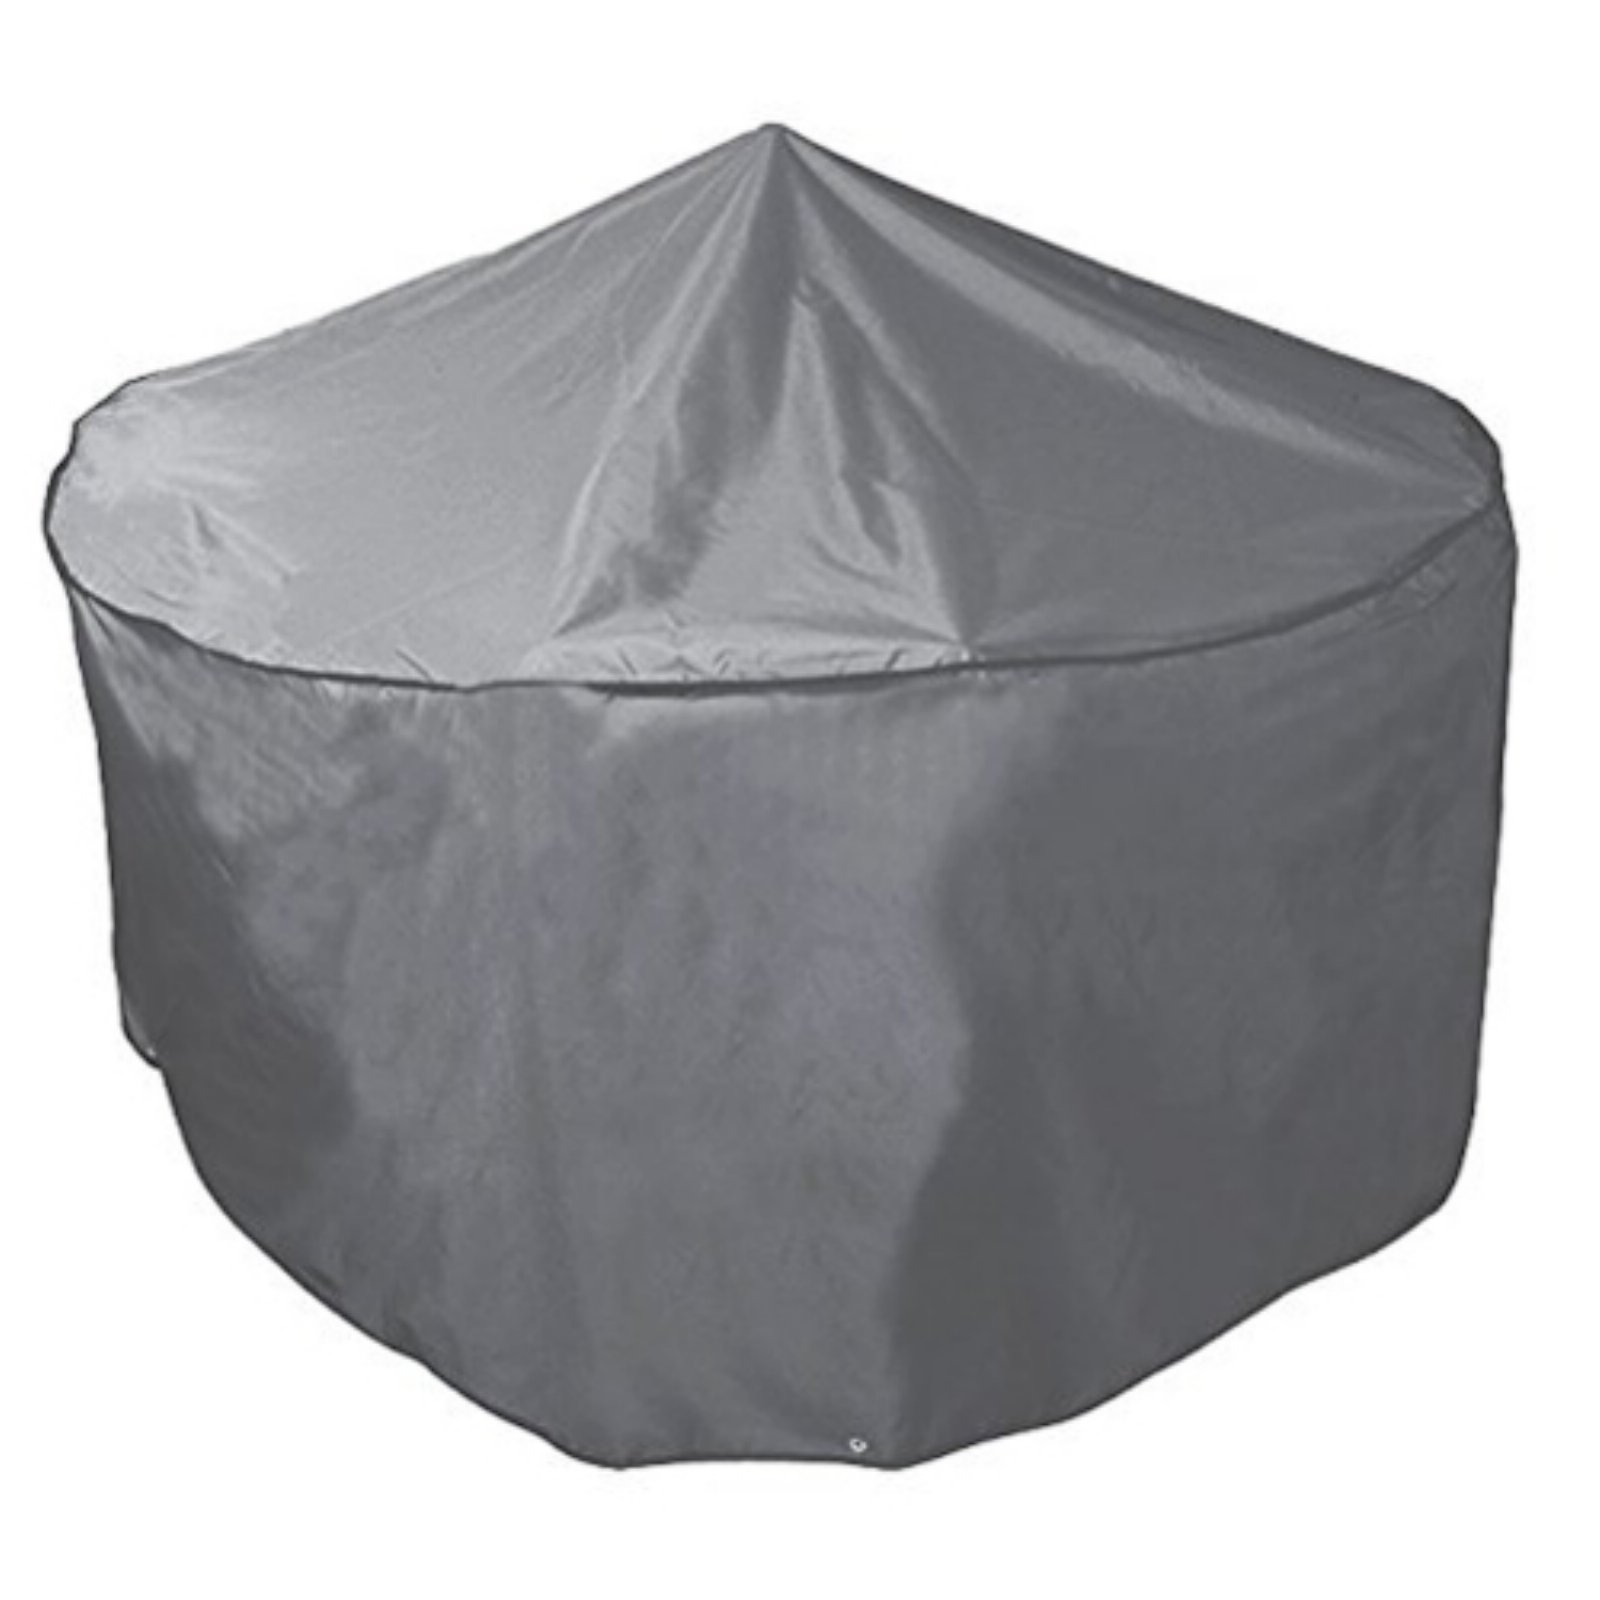 Bosmere Waterproof Grey Outdoor Cover for Round Outdoor Table & Chair Set - 64W x 33H in.